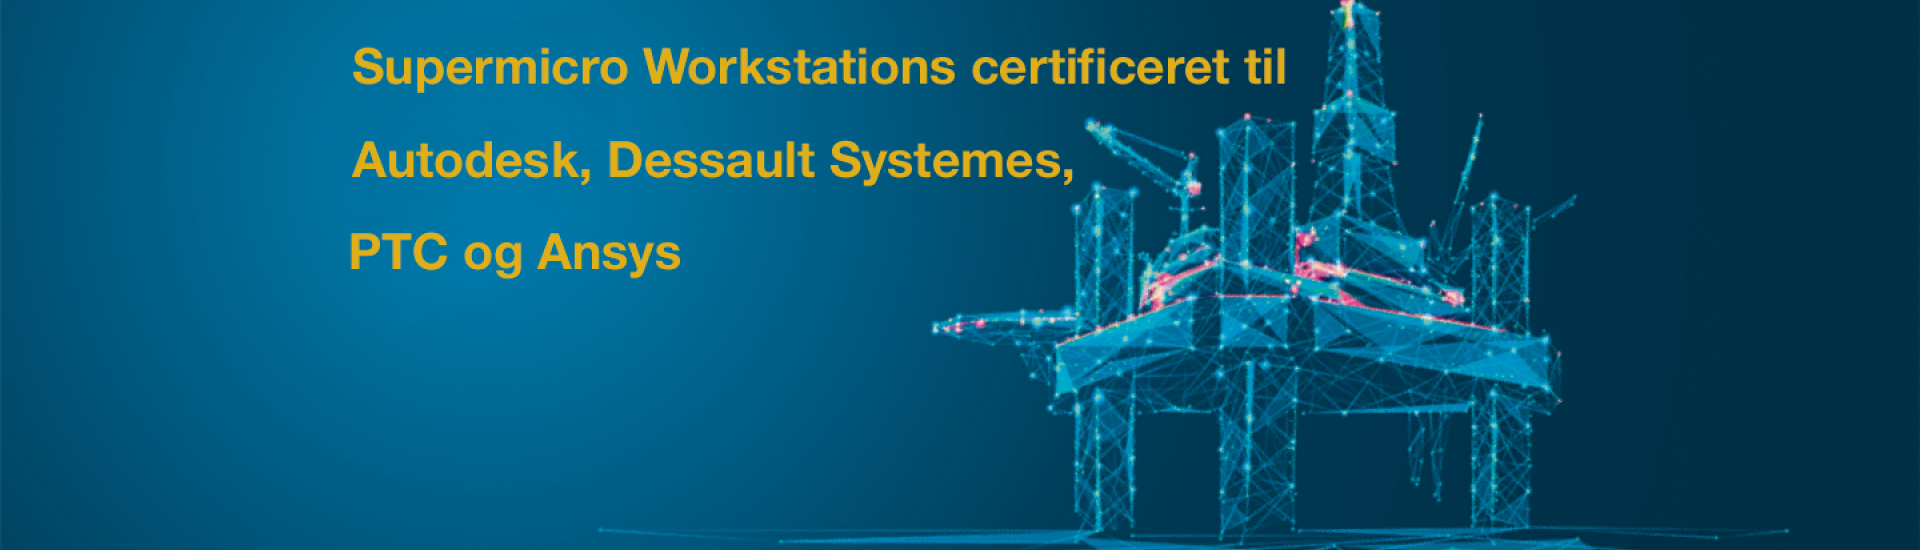 Supermicro Workstations certificeret til Autodesk, Dassault Systemes, PTC og Ansys